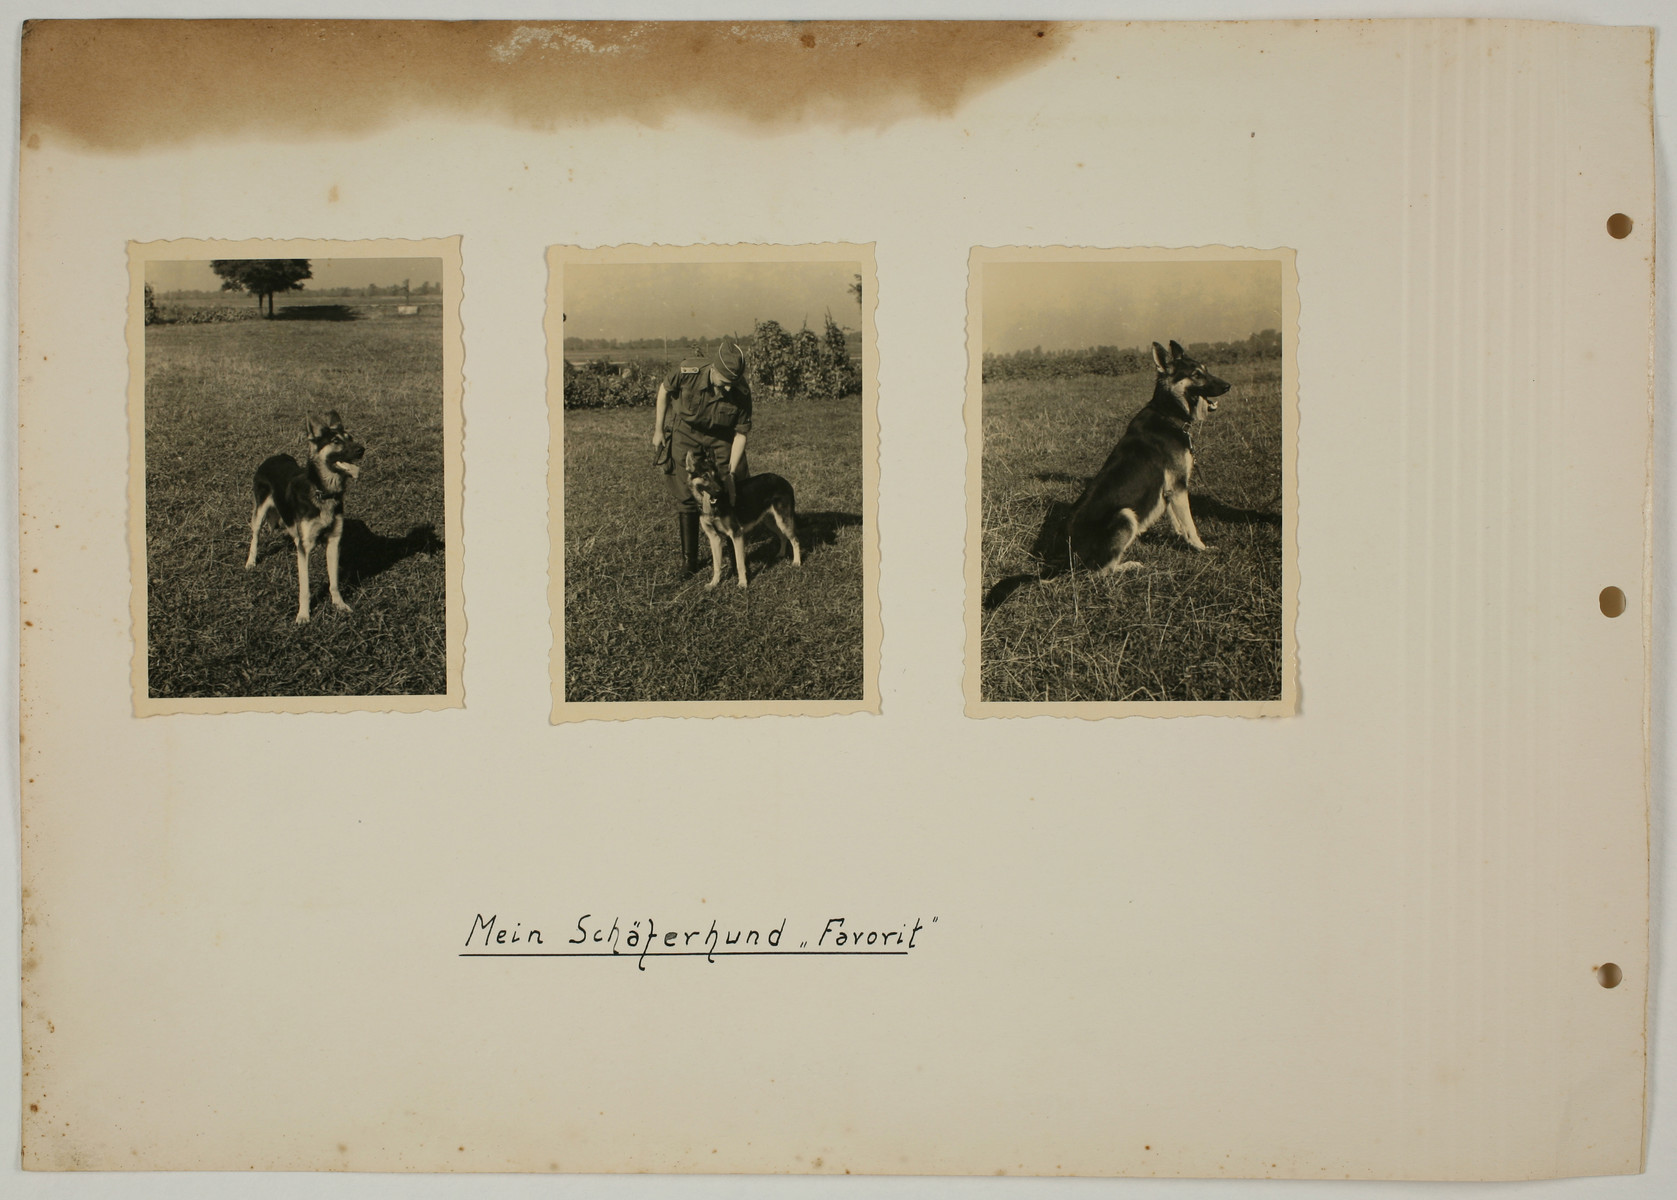 """One page from an album created by adjutant to the commandant Karl Hoecker, depicting SS activities in and around the Auschwitz concentration camp.  The original caption reads """"Mein Schaeferhund ,Favorit'"""" [My Shephard dog ,Favorit']."""